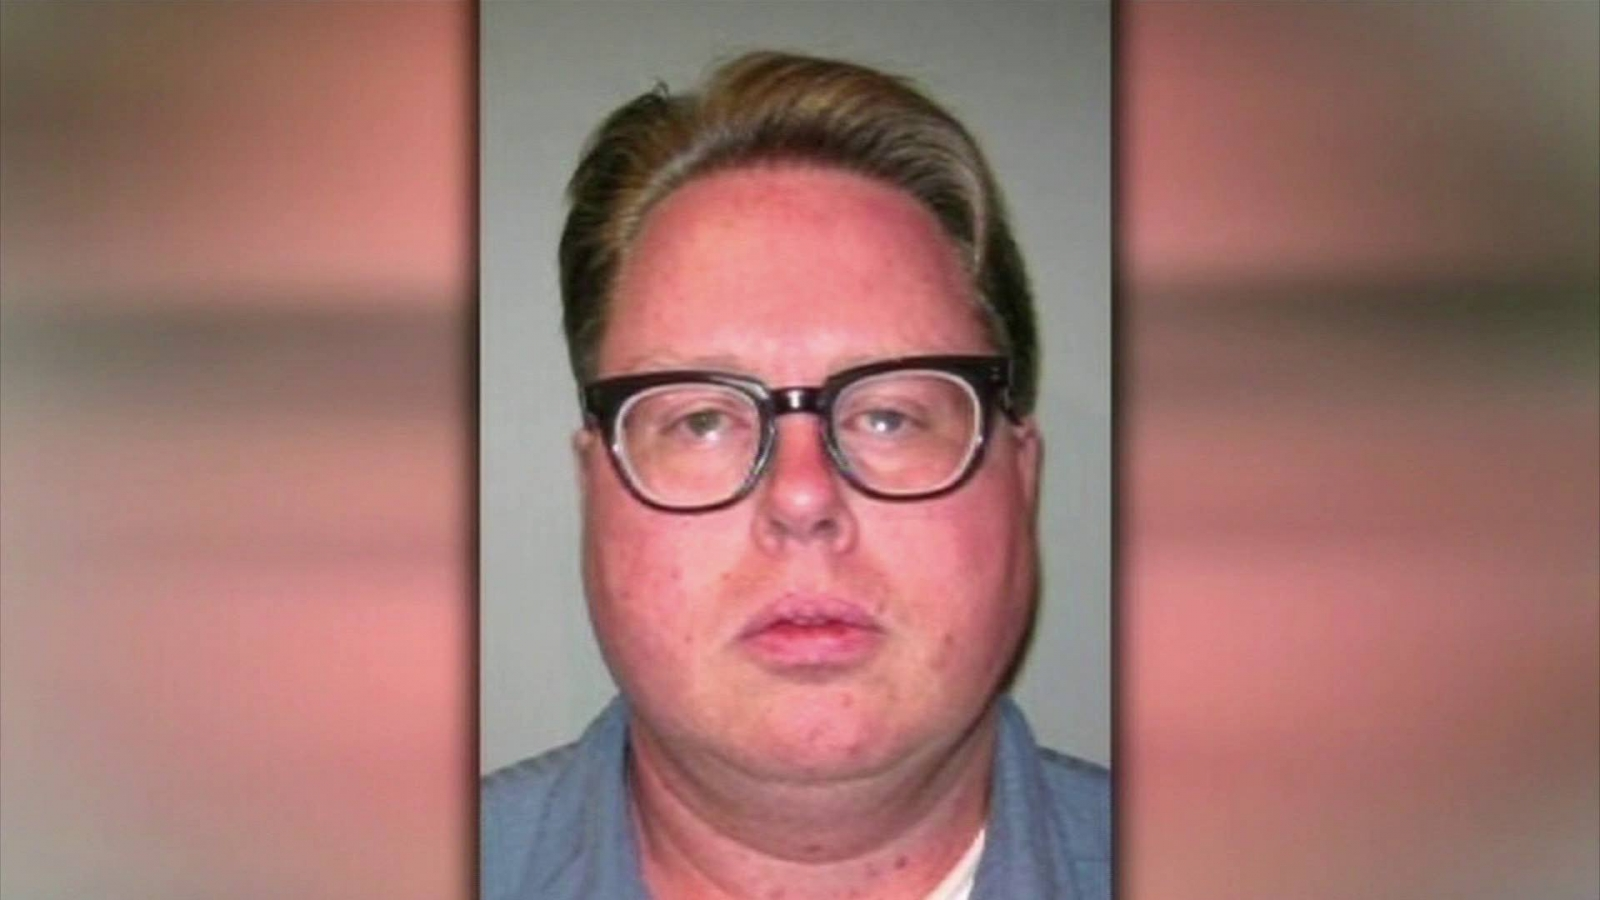 Sex offender John Henry Skillern was caught by Google when he sent explicit images using his Gmail account